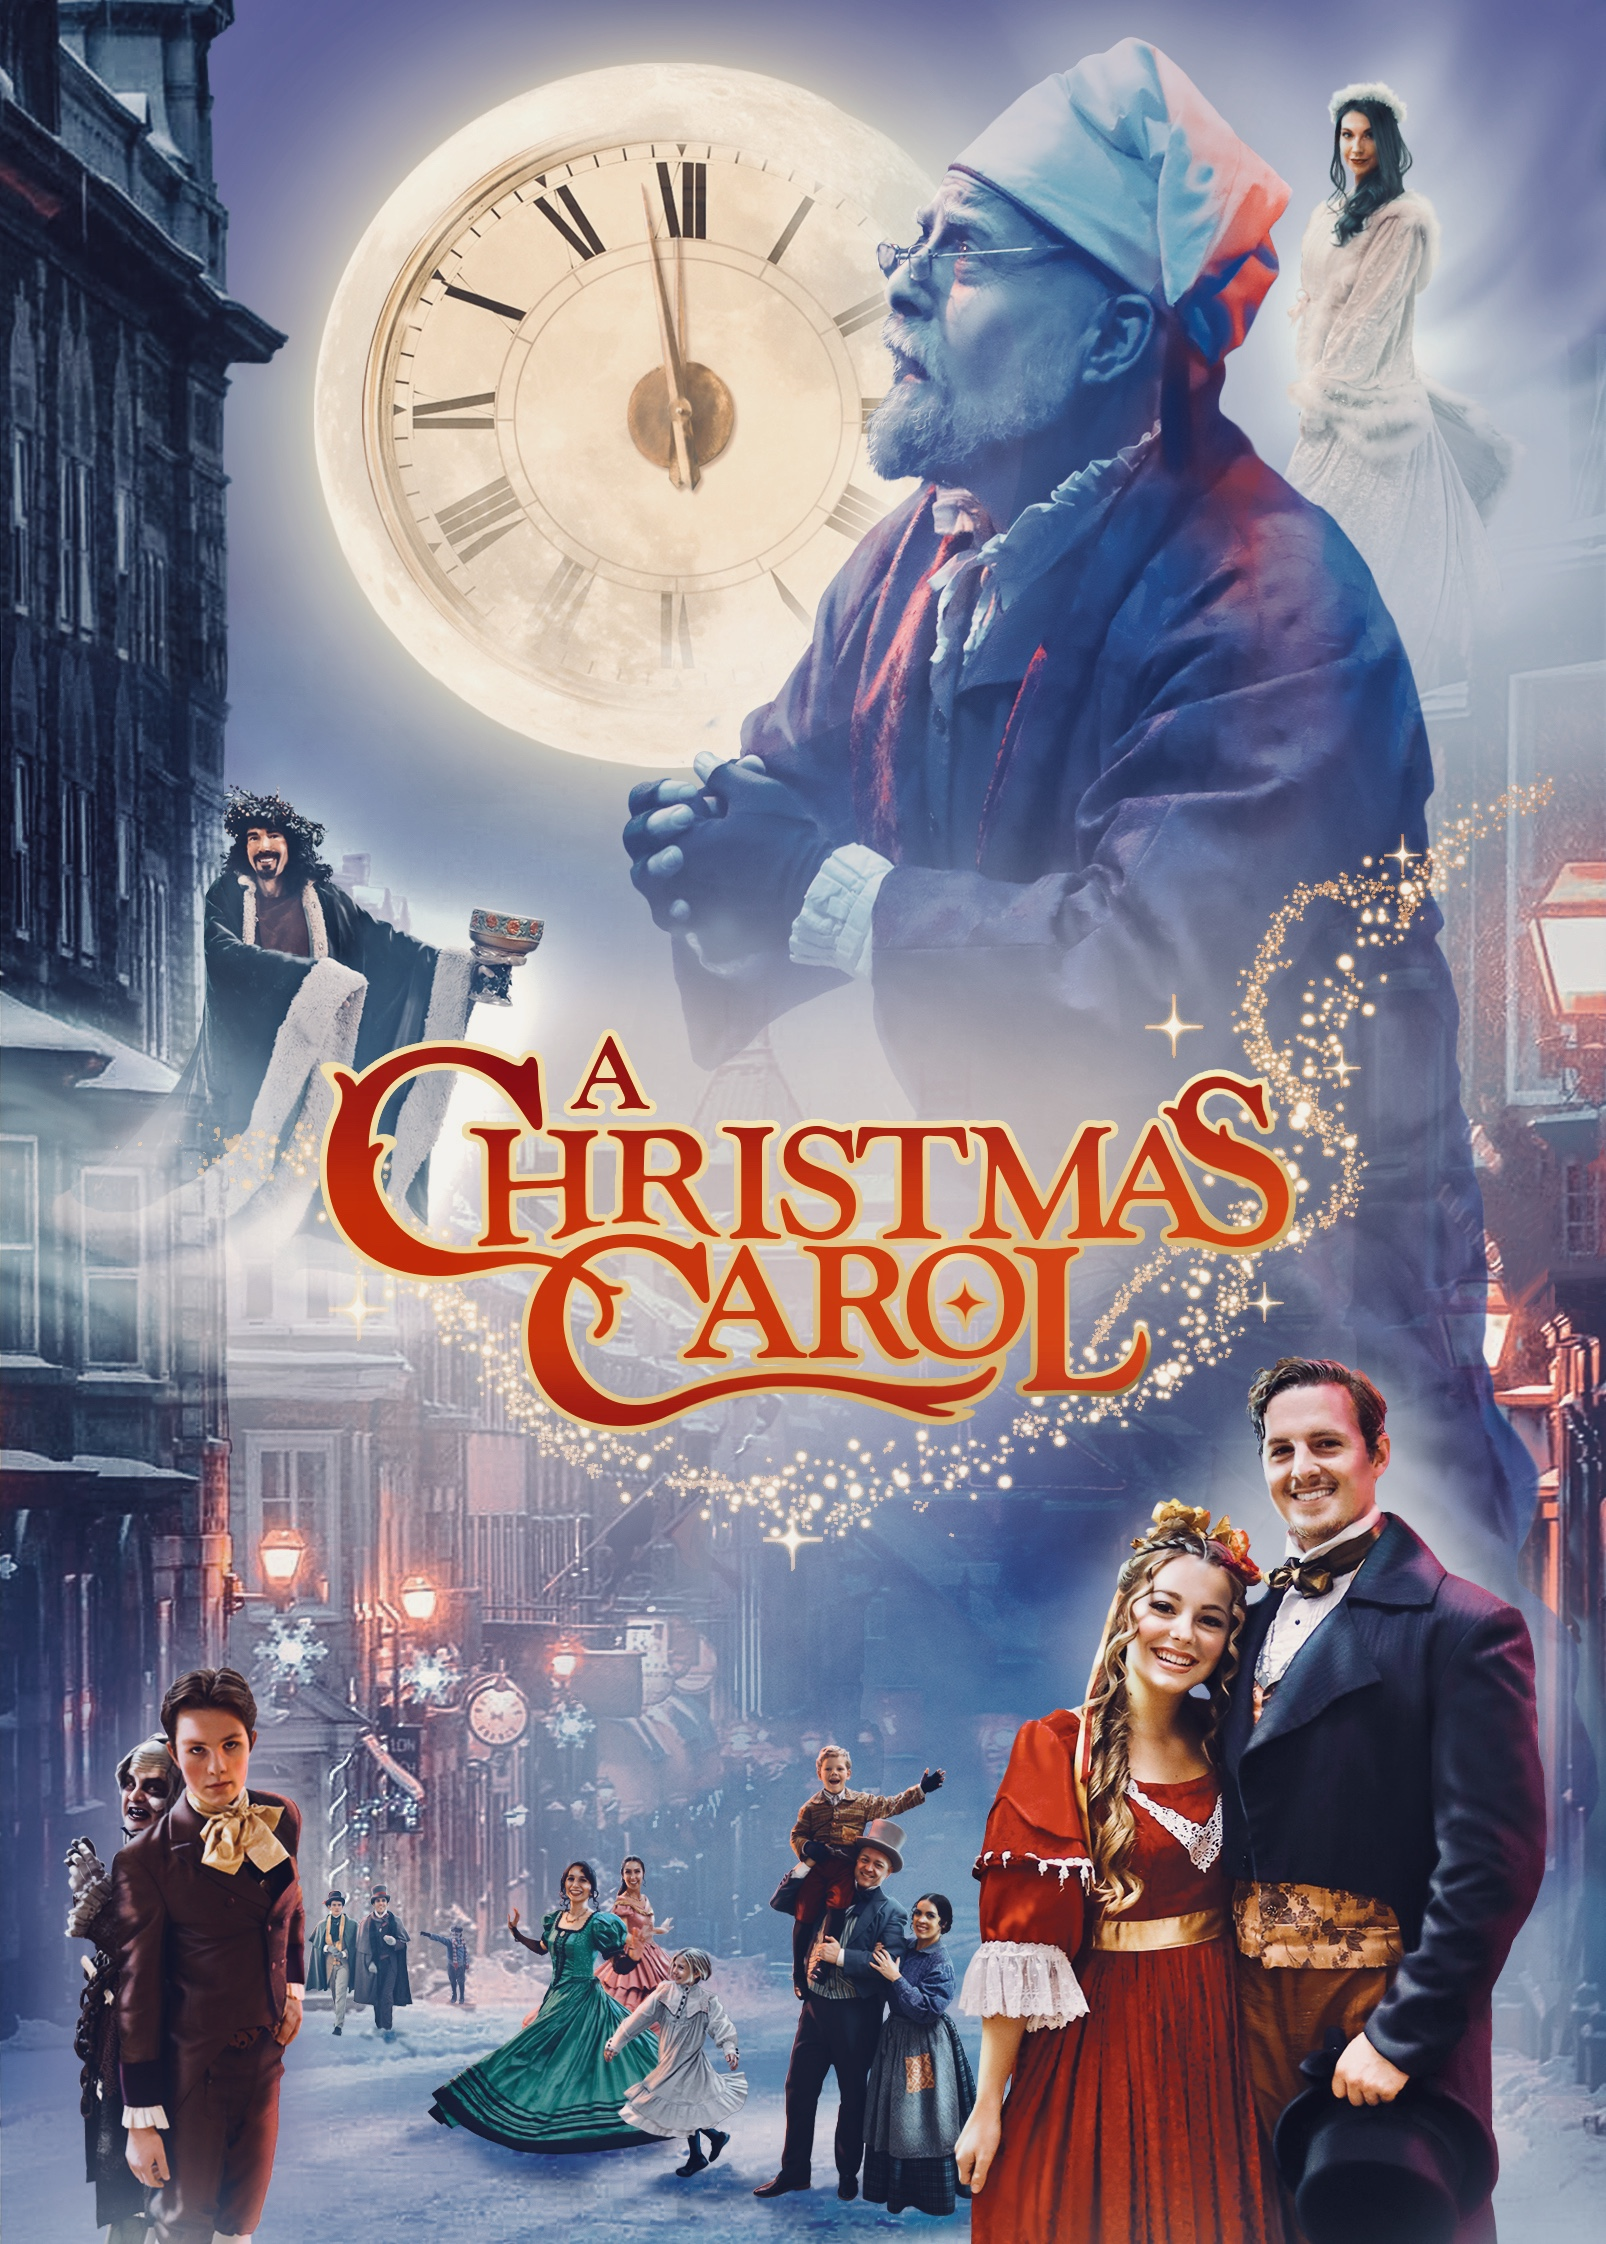 2020 Christmas Carols A Christmas Carol (Video 2020)   IMDb